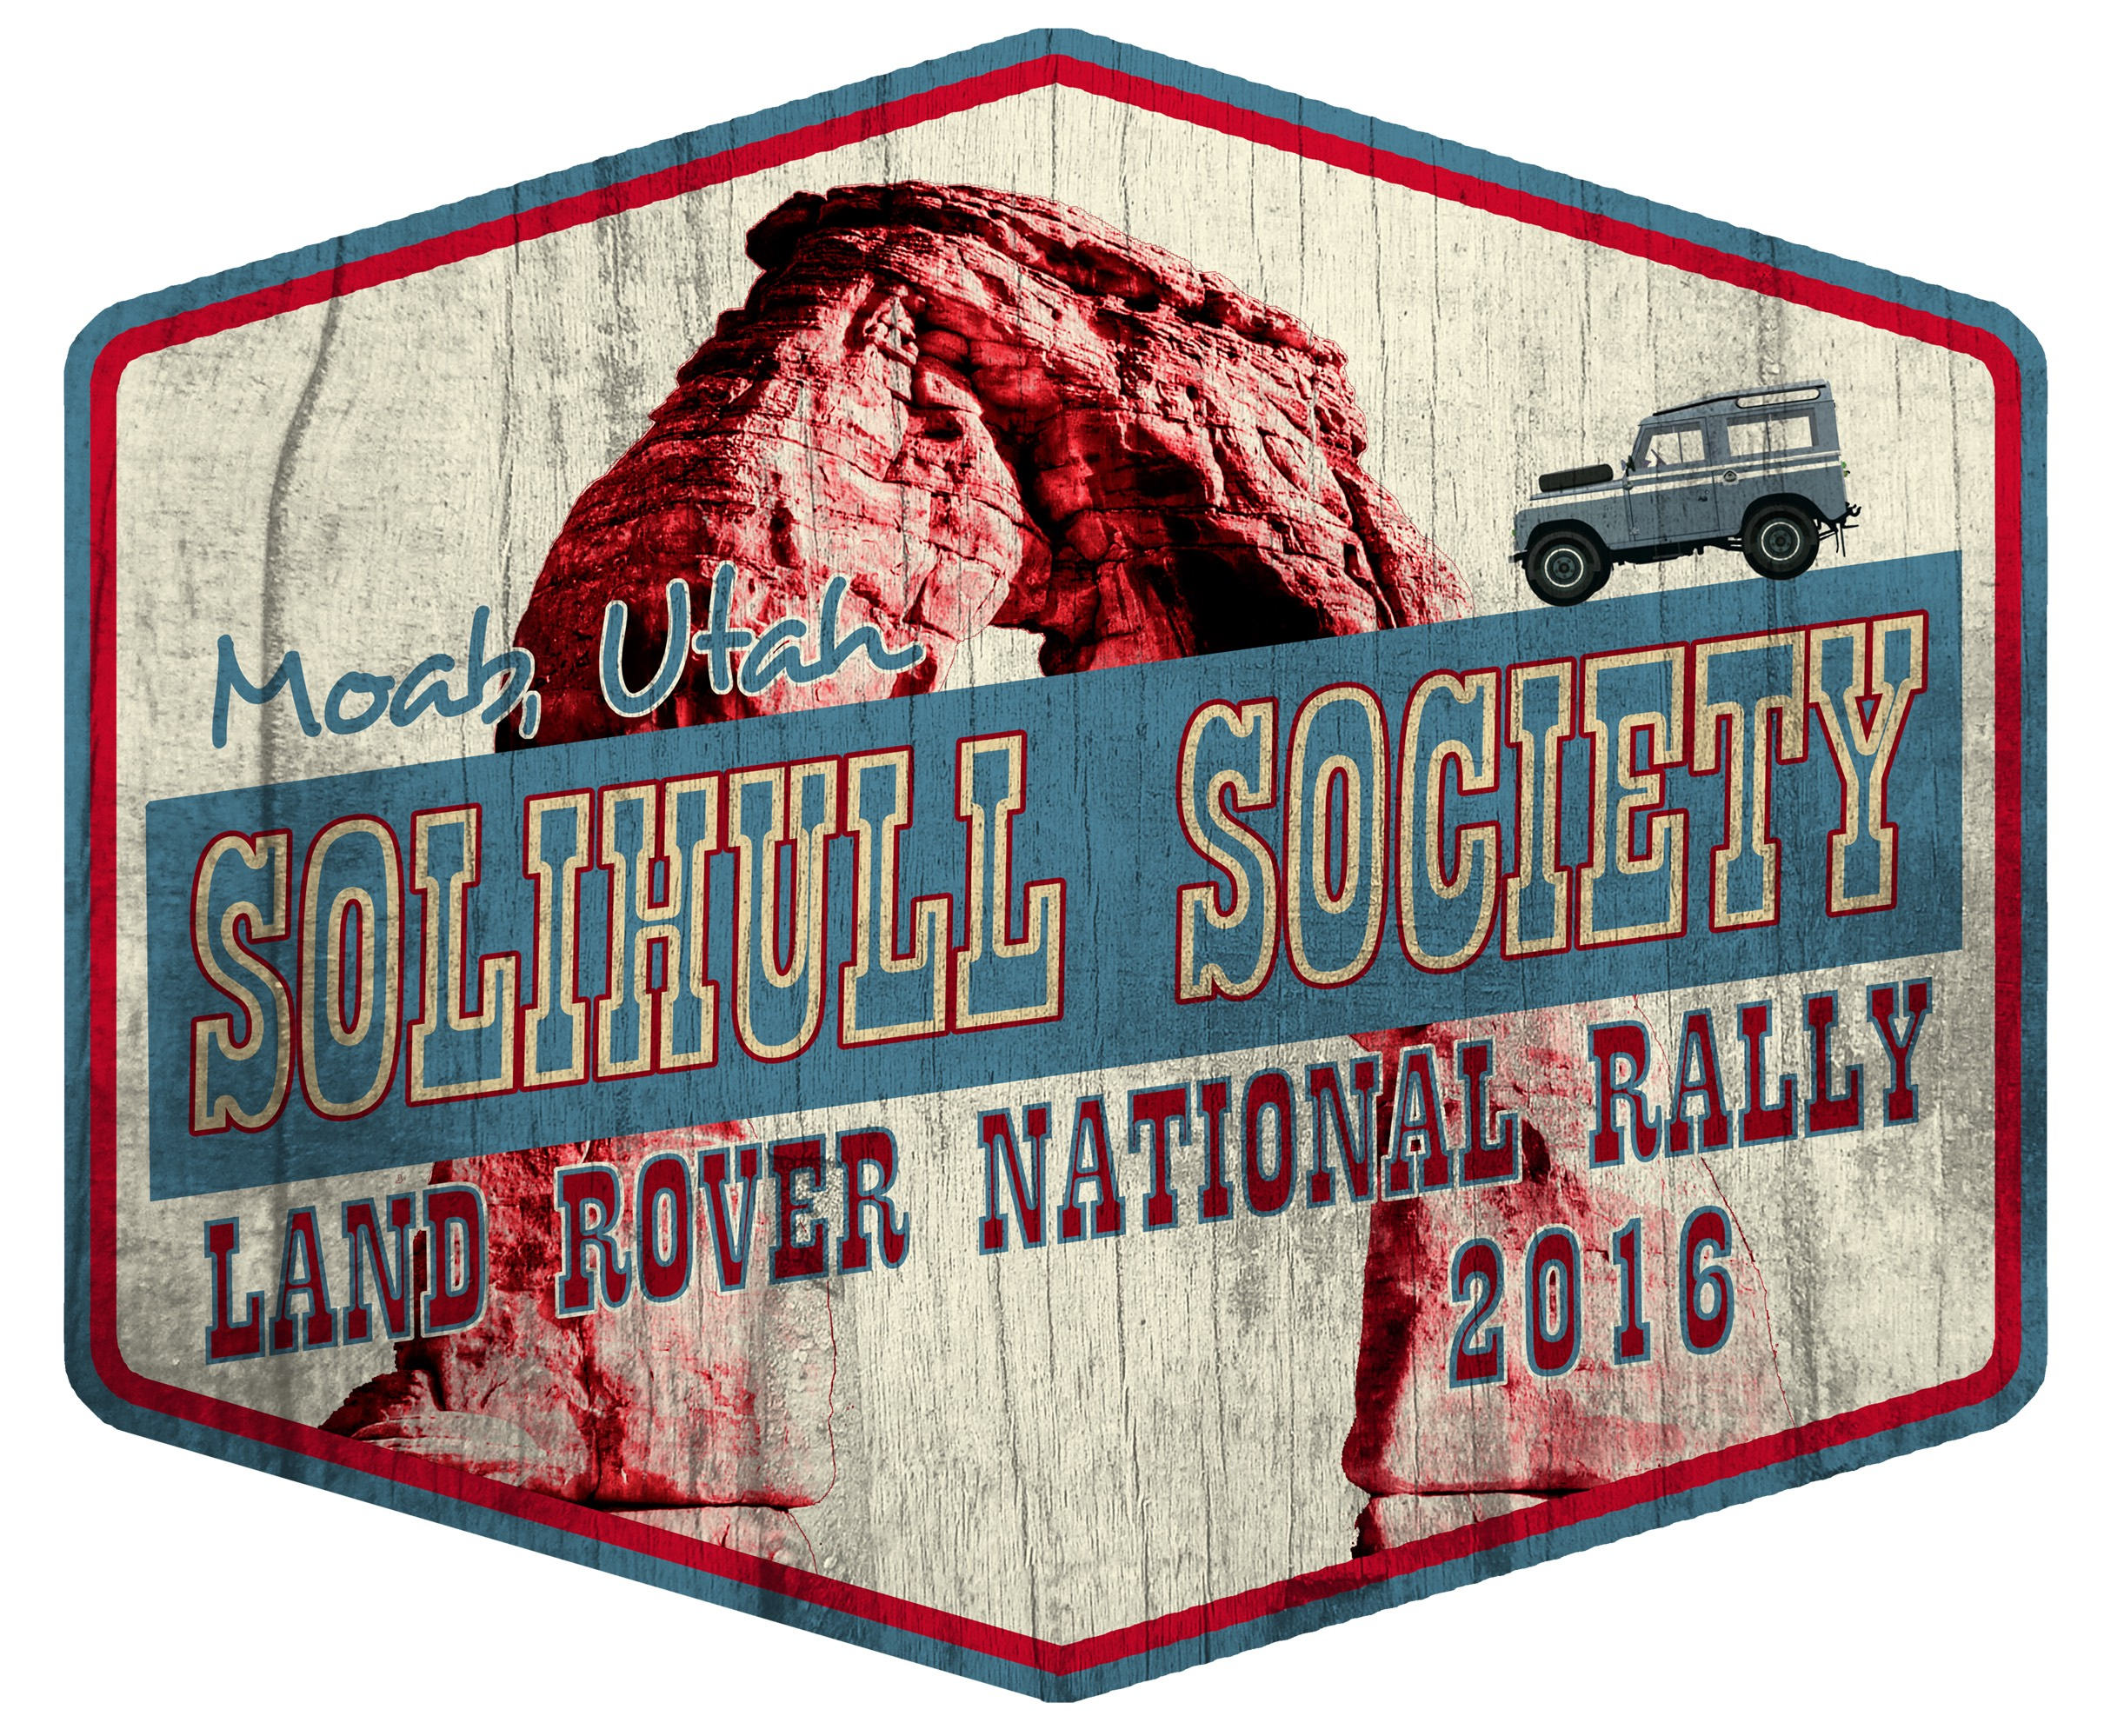 Solihull Society Land Rover National Rally 2016